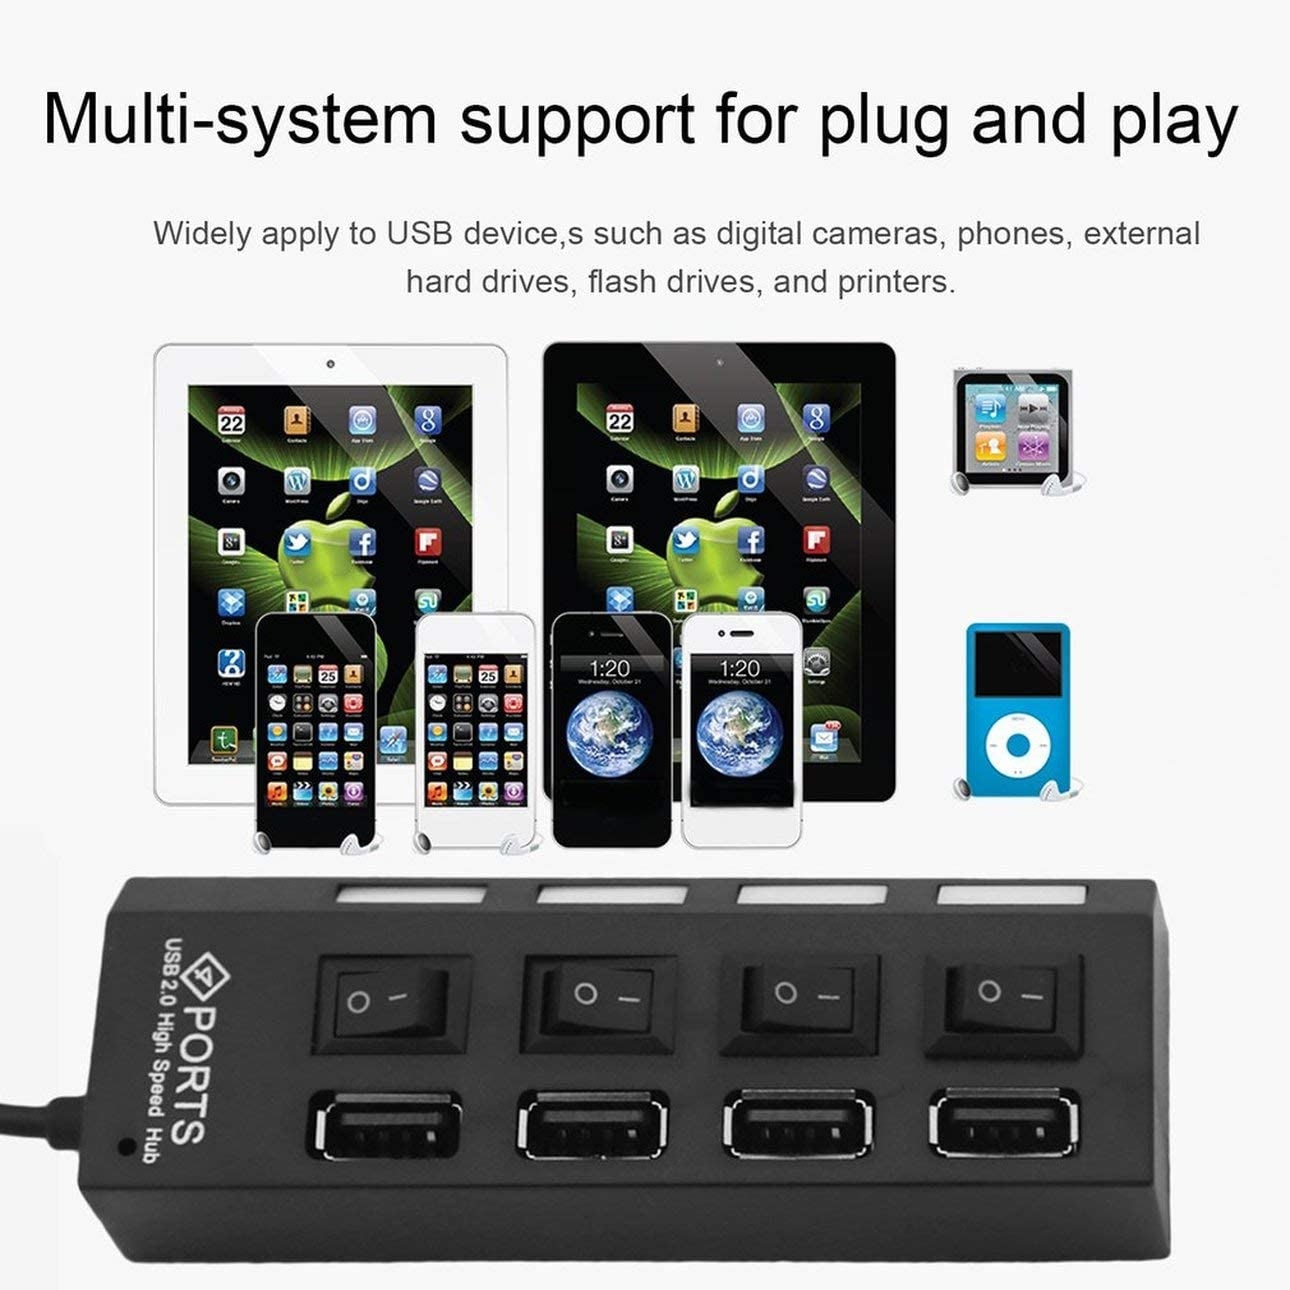 Liobaba 4 Ports Multiple USB2.0 HUB Splitter Adapter High Speed for PC Laptop Computer Plug and Play with On//Off Switch